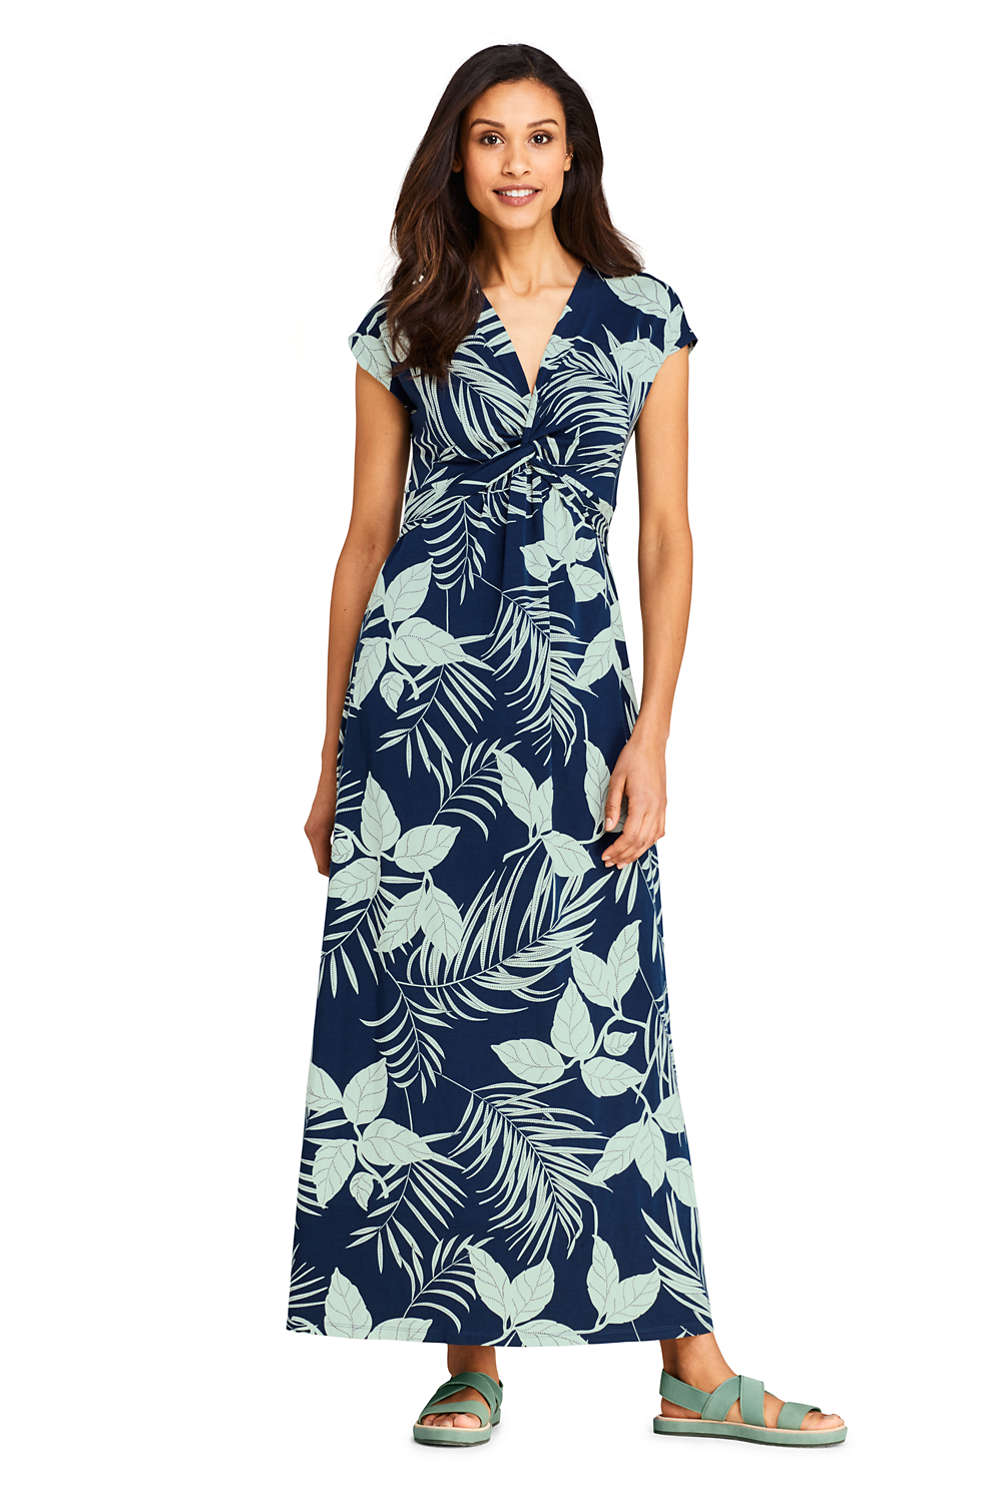 49fb7a5ec Women's Knot Front Cap Sleeve Maxi Dress from Lands' End